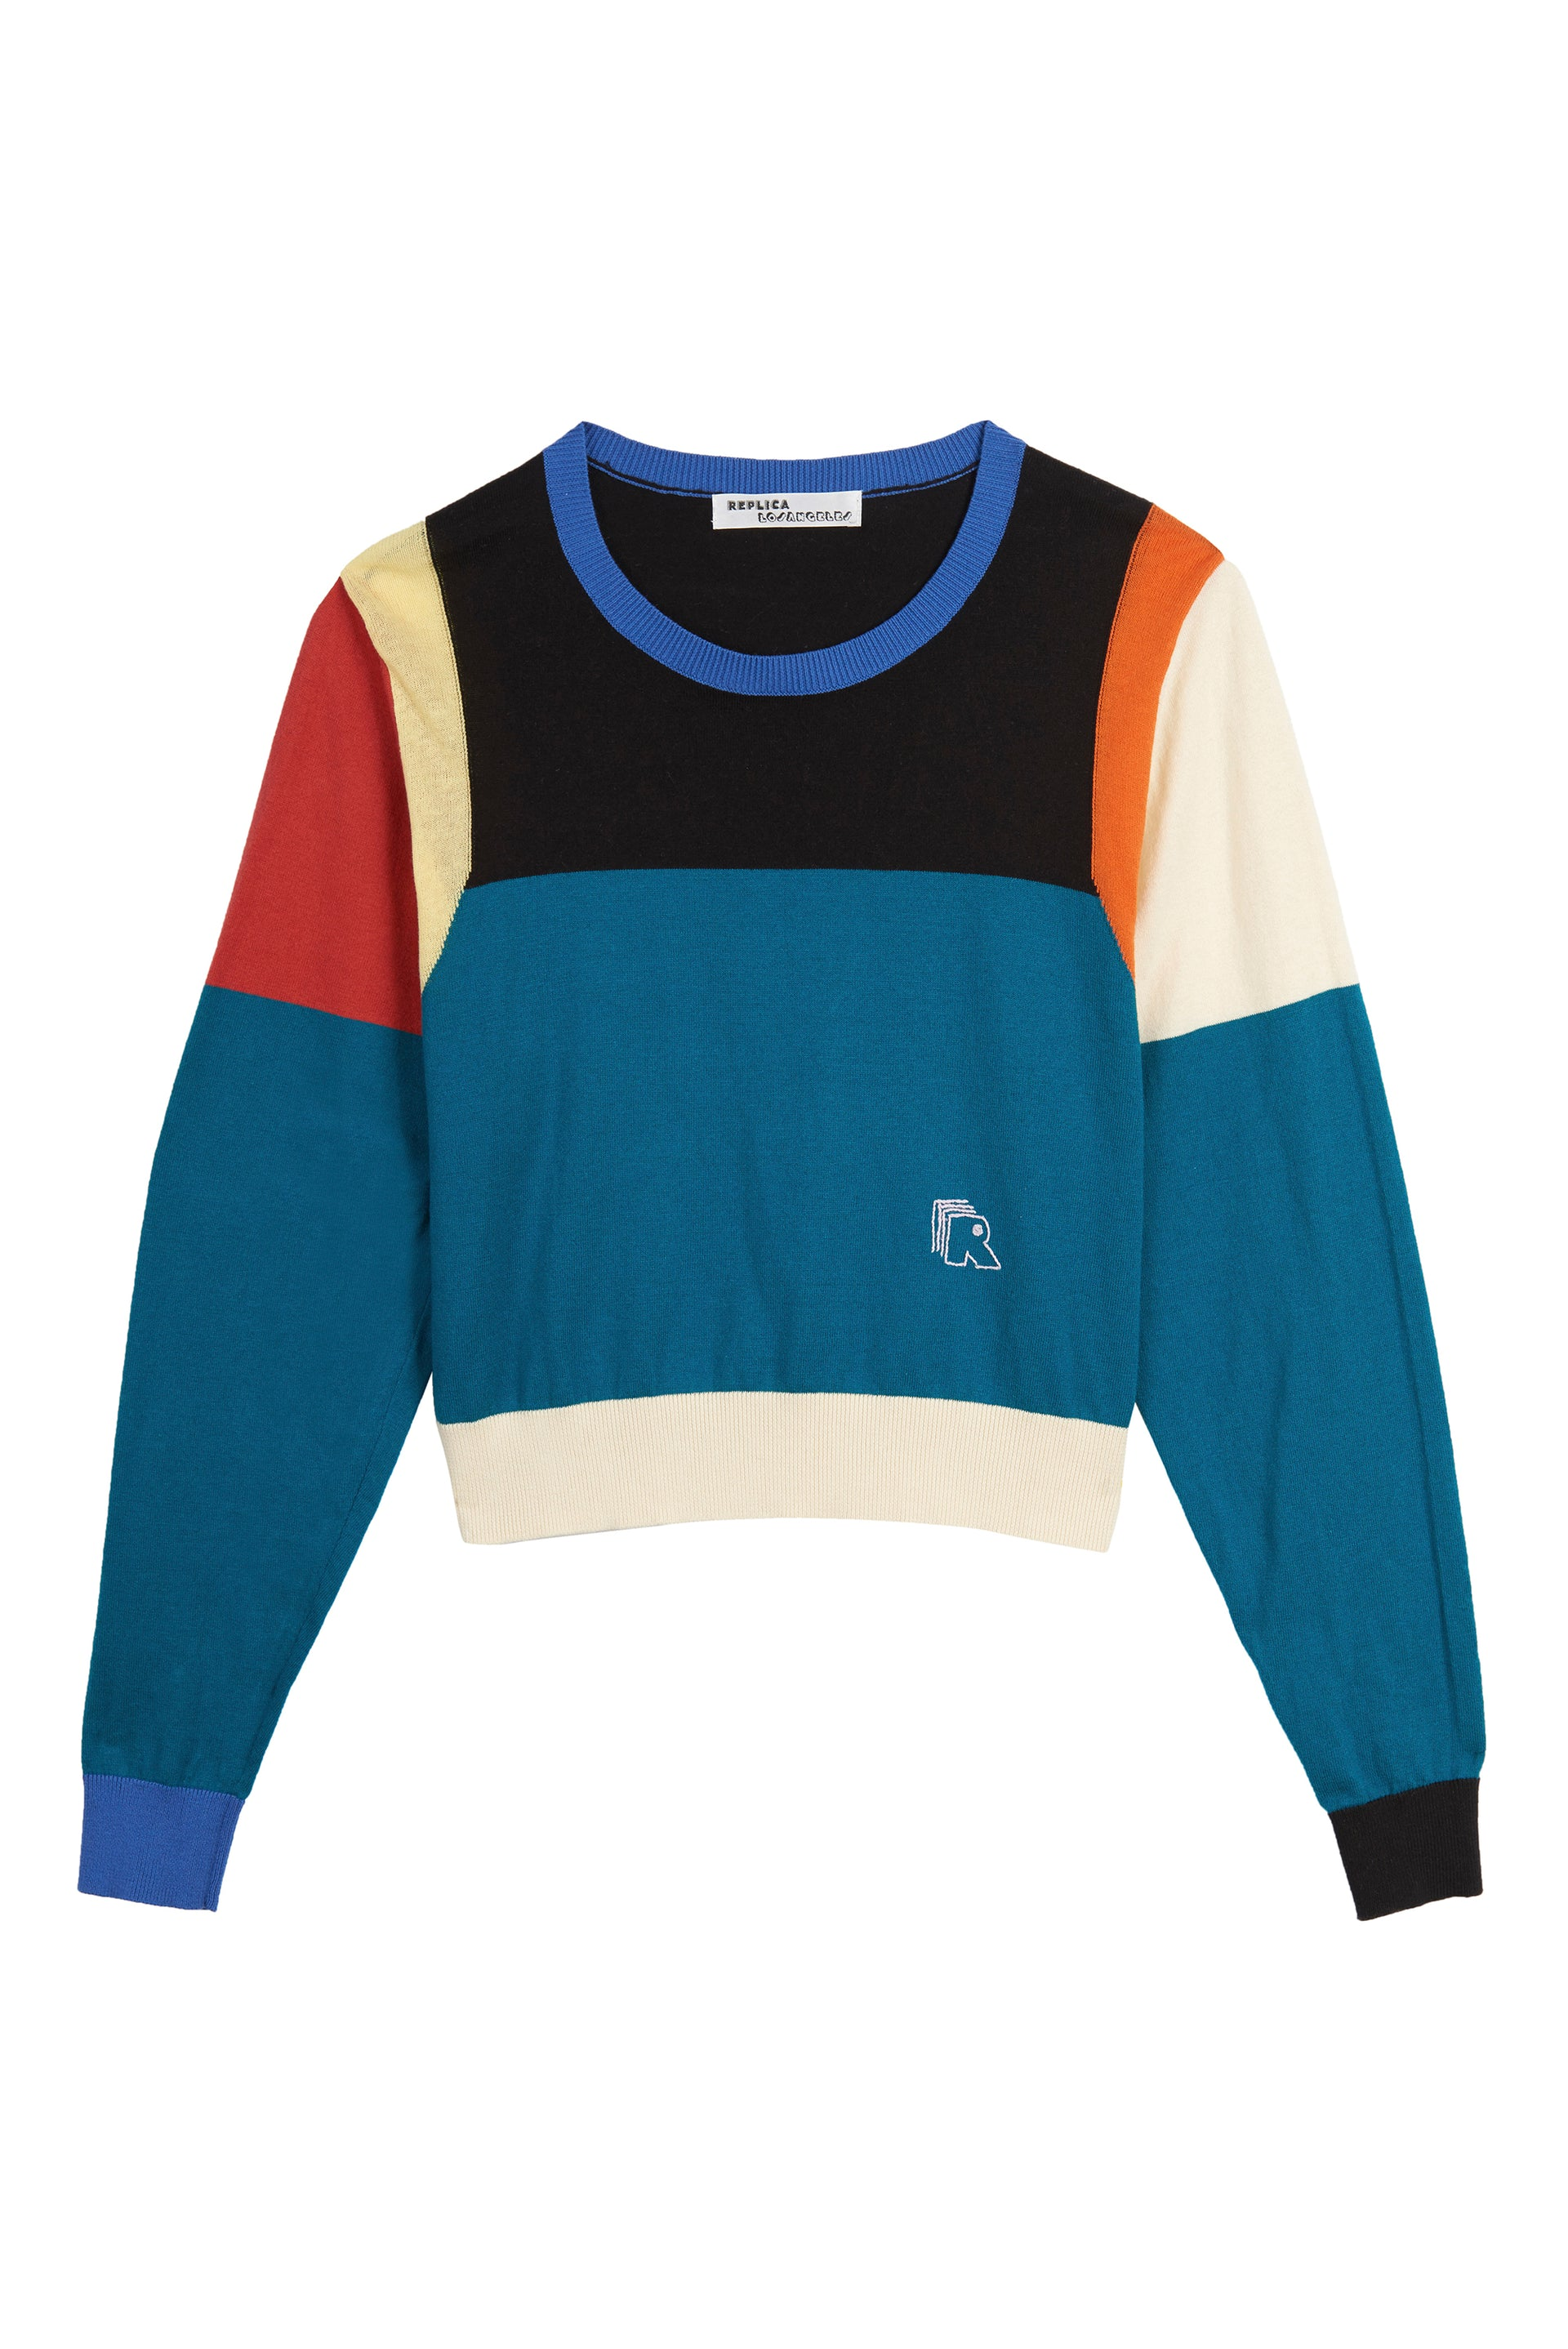 Color Block Cropped Sweatshirt